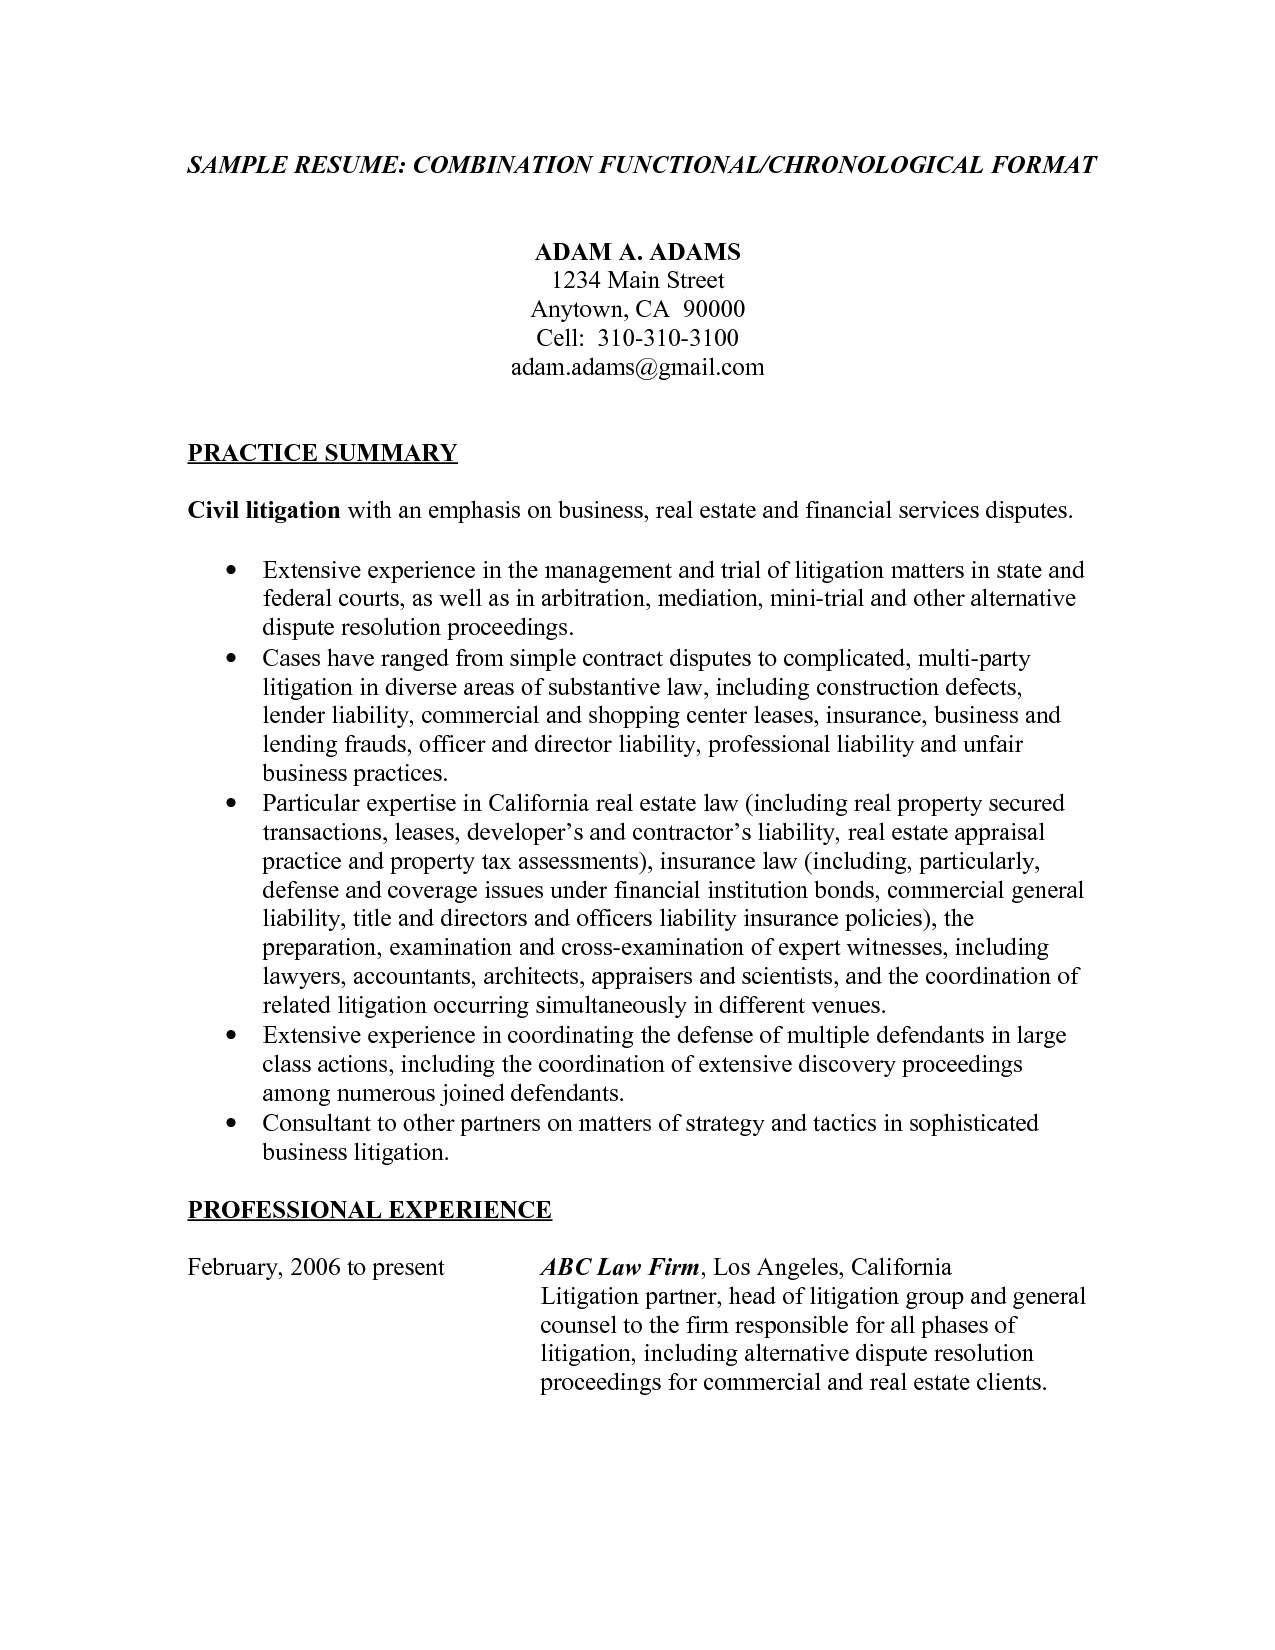 A Resume Title Examples | Resume Examples | Pinterest | Resume ...